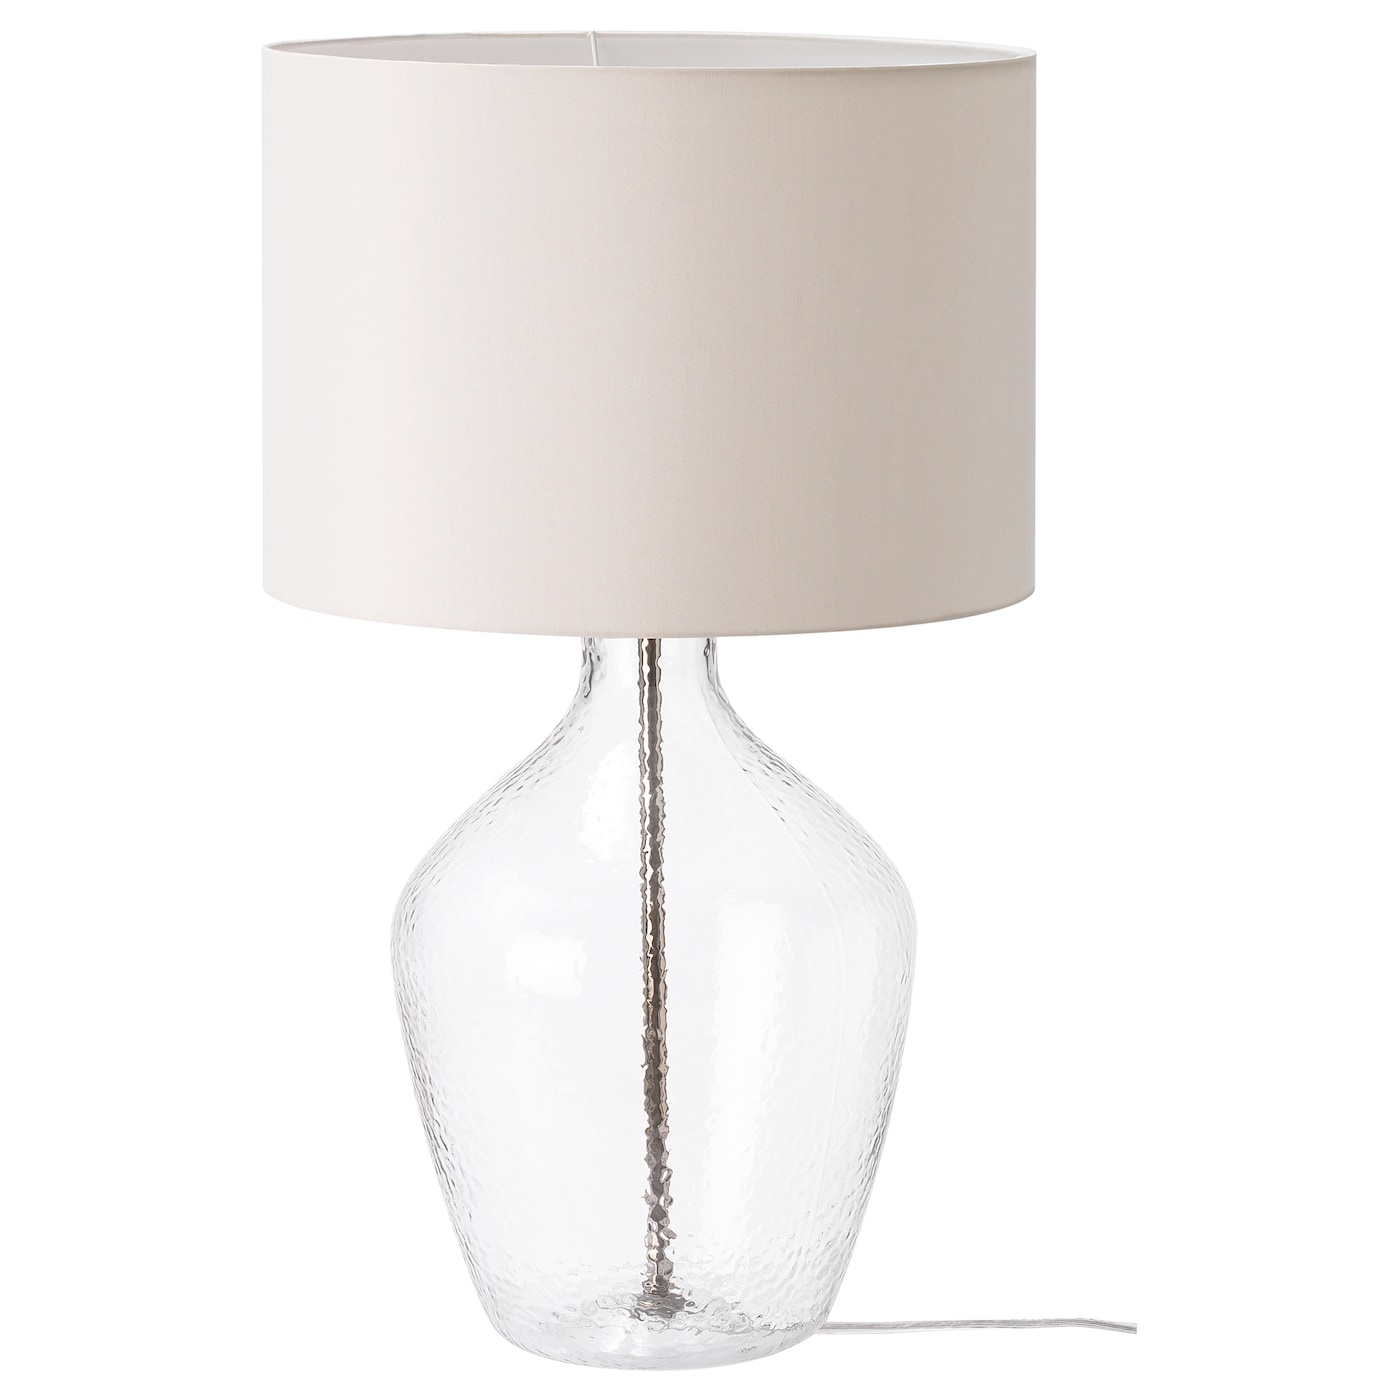 Allanit Table Lamp White Glass Ikea Canada Ikea